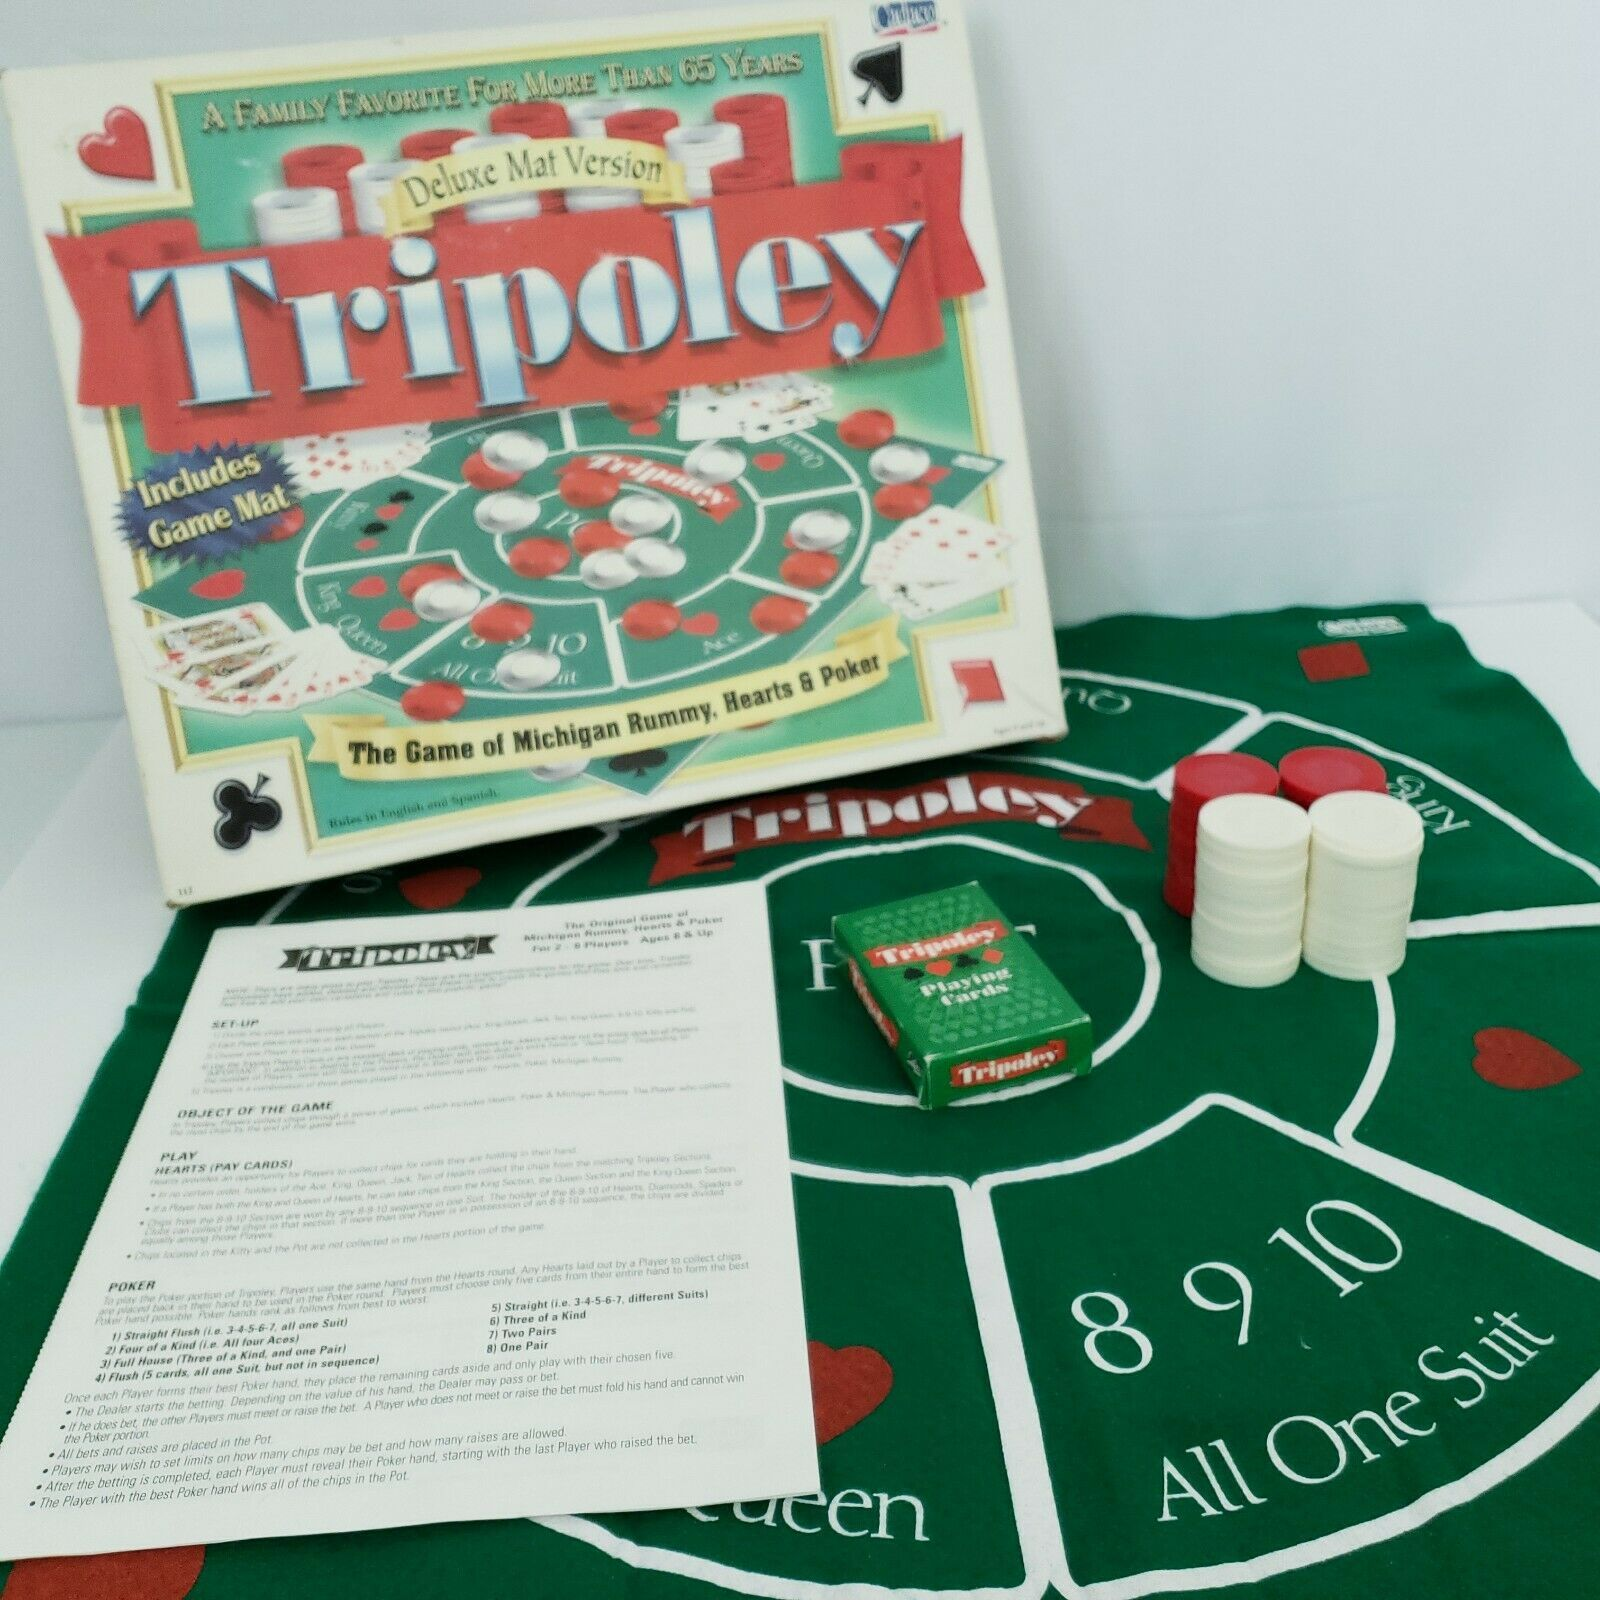 Tripoley Board Game Deluxe Mat Version Cadaco 2-9 Players Vintage 1999 Complete